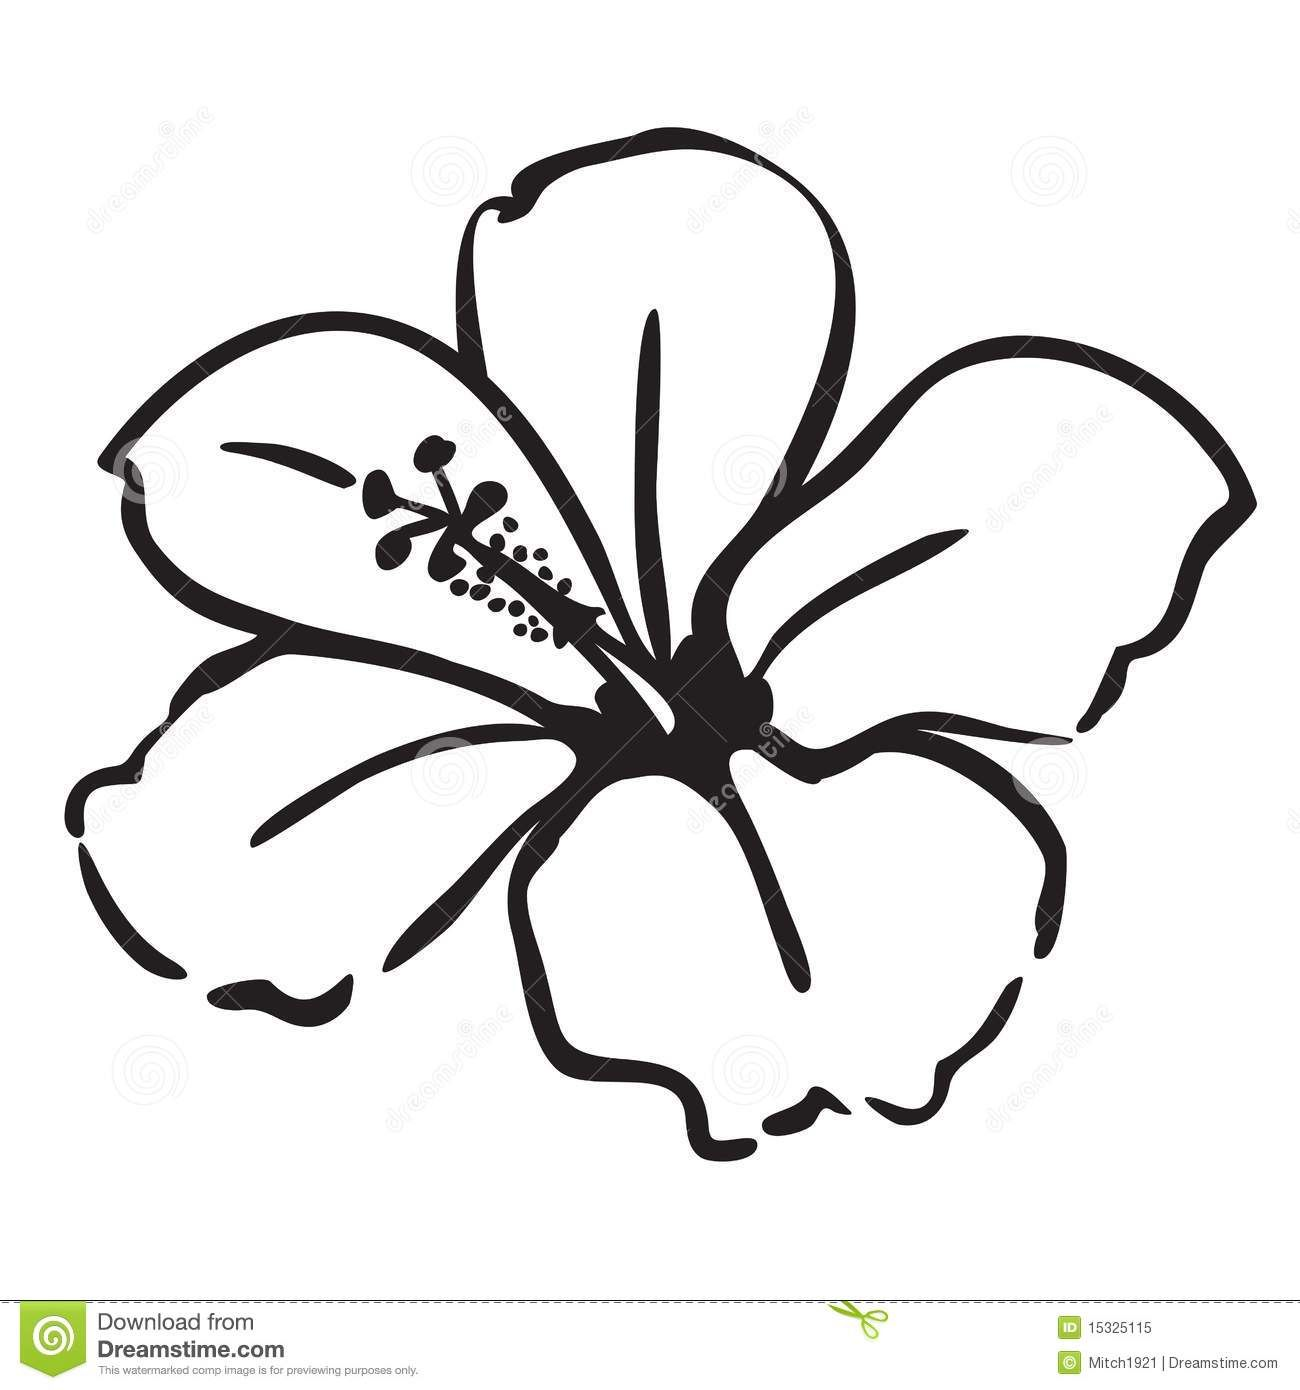 hibiscus drawing Google Search Coastal Pinterest